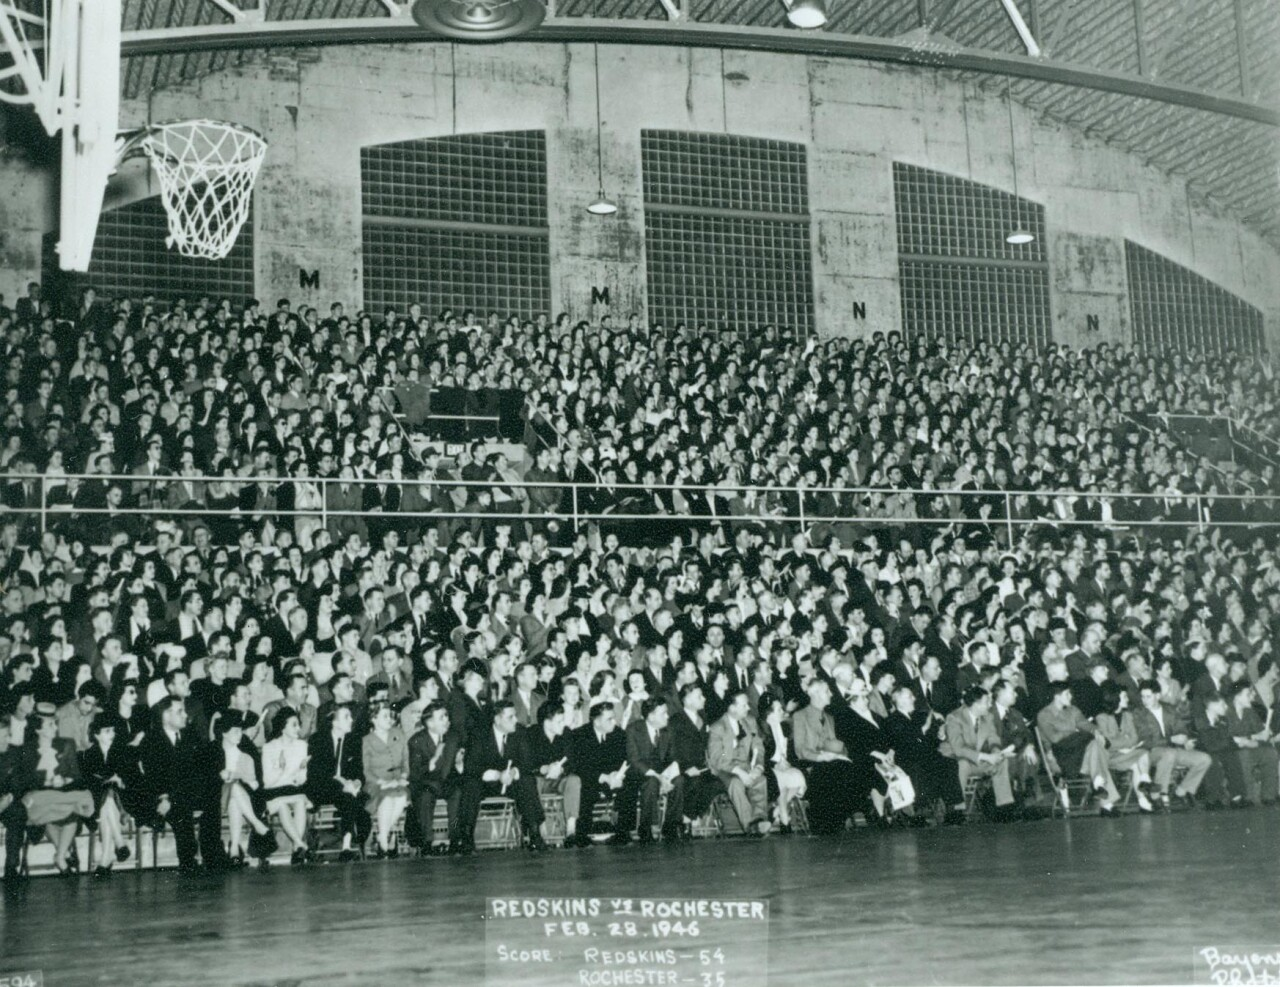 Crowds gathering to watch a basketball game inside The Armory. Image Preserved by the Sheboygan County Historical Research Center.